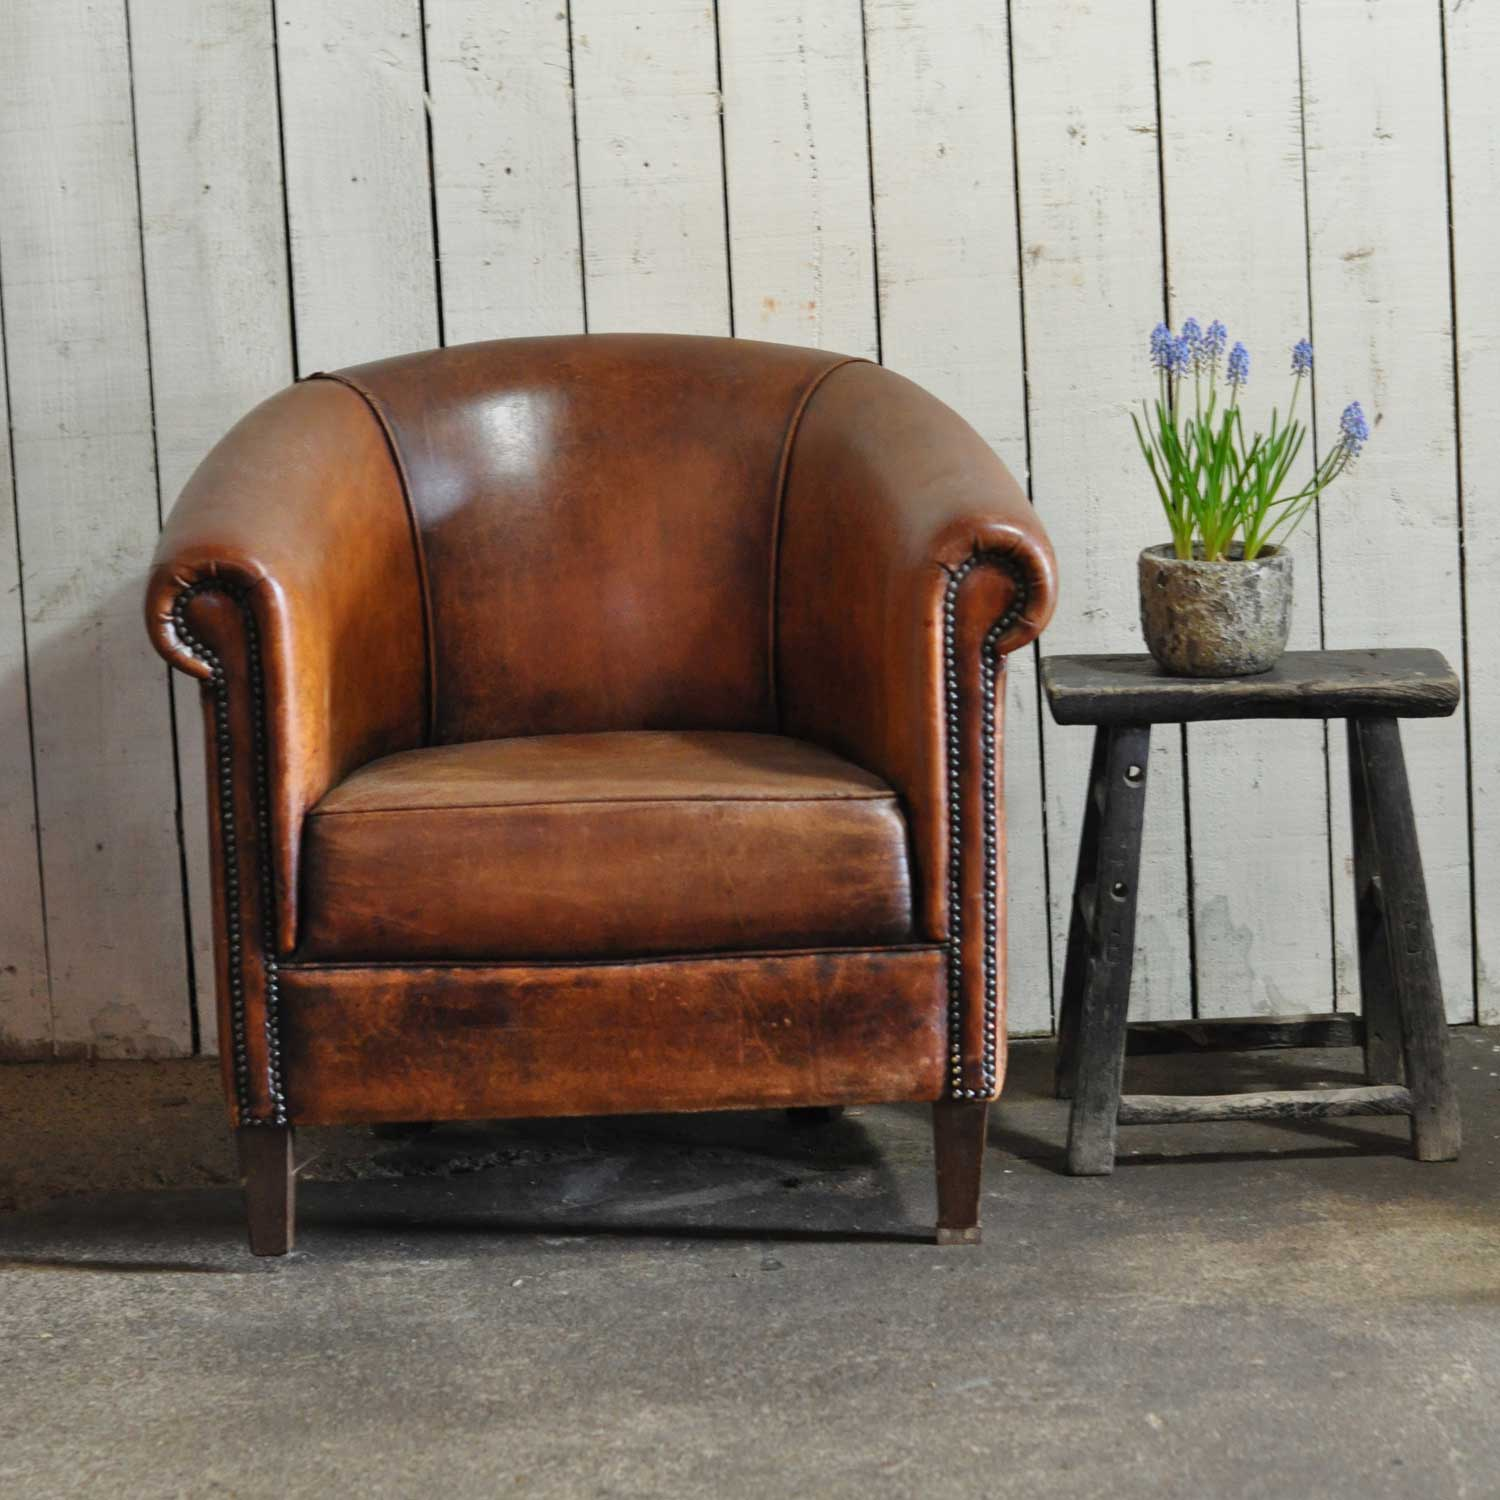 Club Chair Leather Vintage Worn French Leather Club Chair With Arms